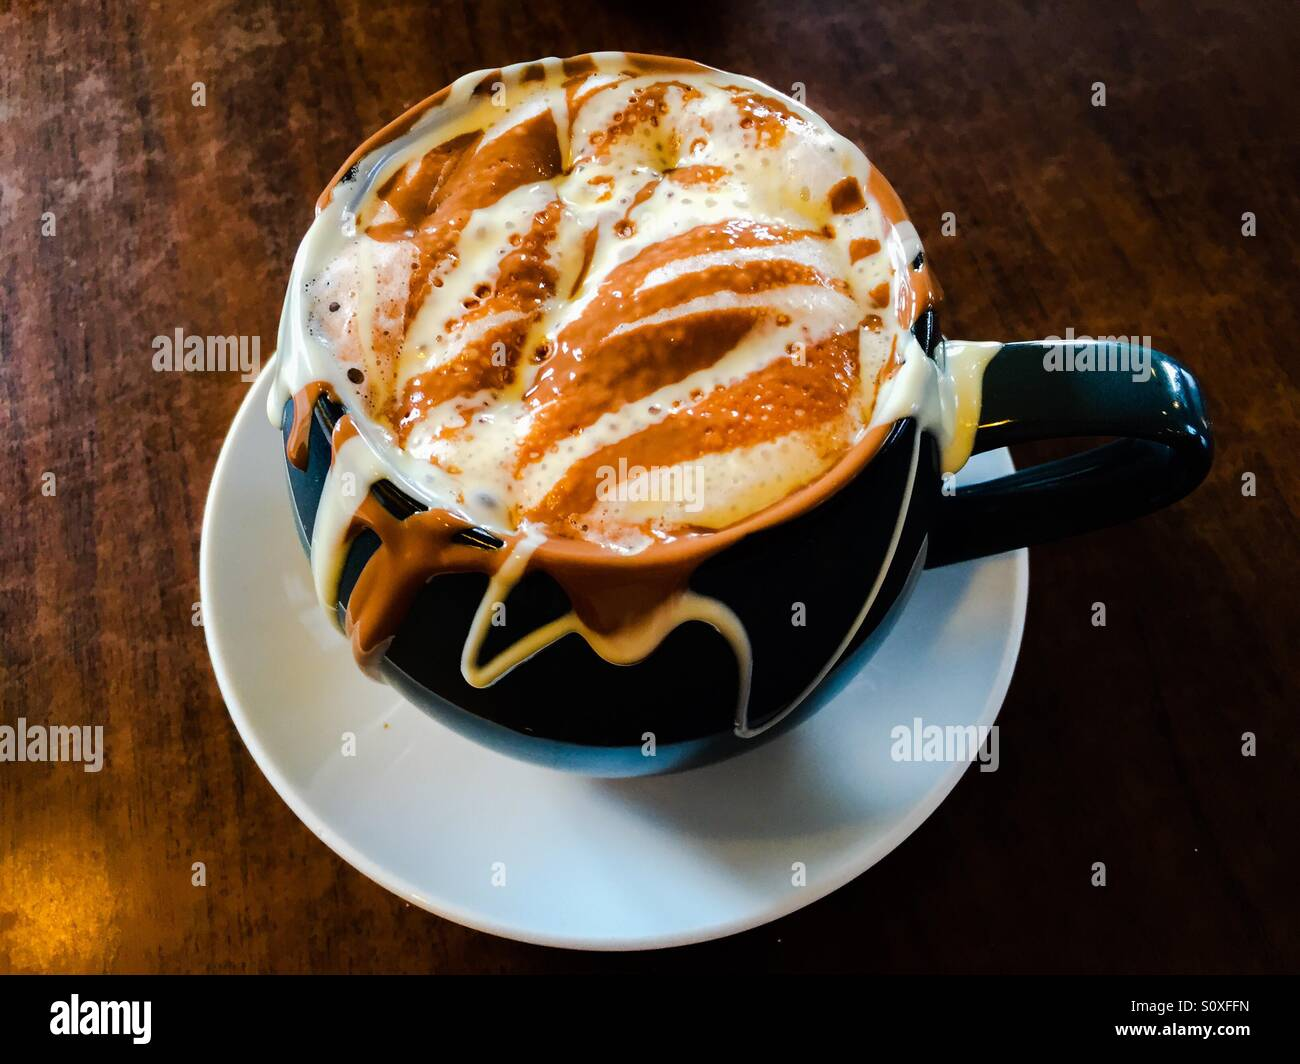 The best hot chocolate in the world? Creamy, melting chocolate drink - Stock Image